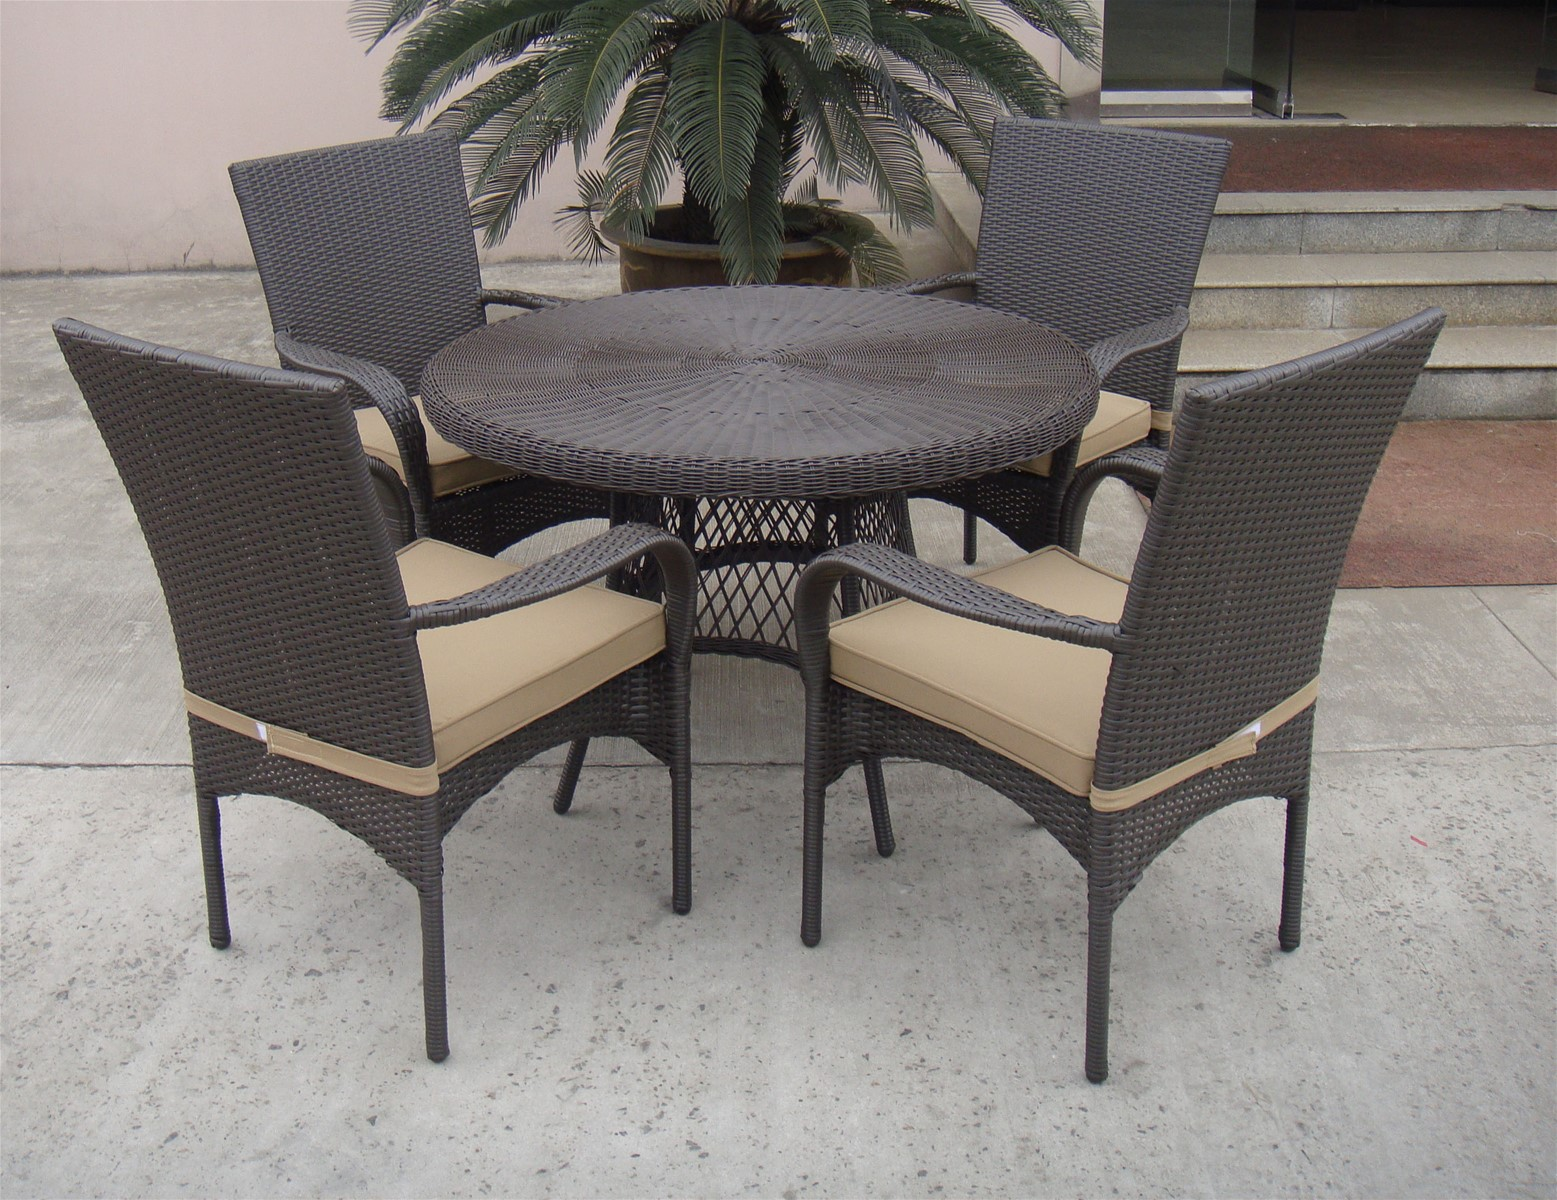 Charmant All Season Outdoor Furniture Rectangle Rattan Table And Chairs Dining Set